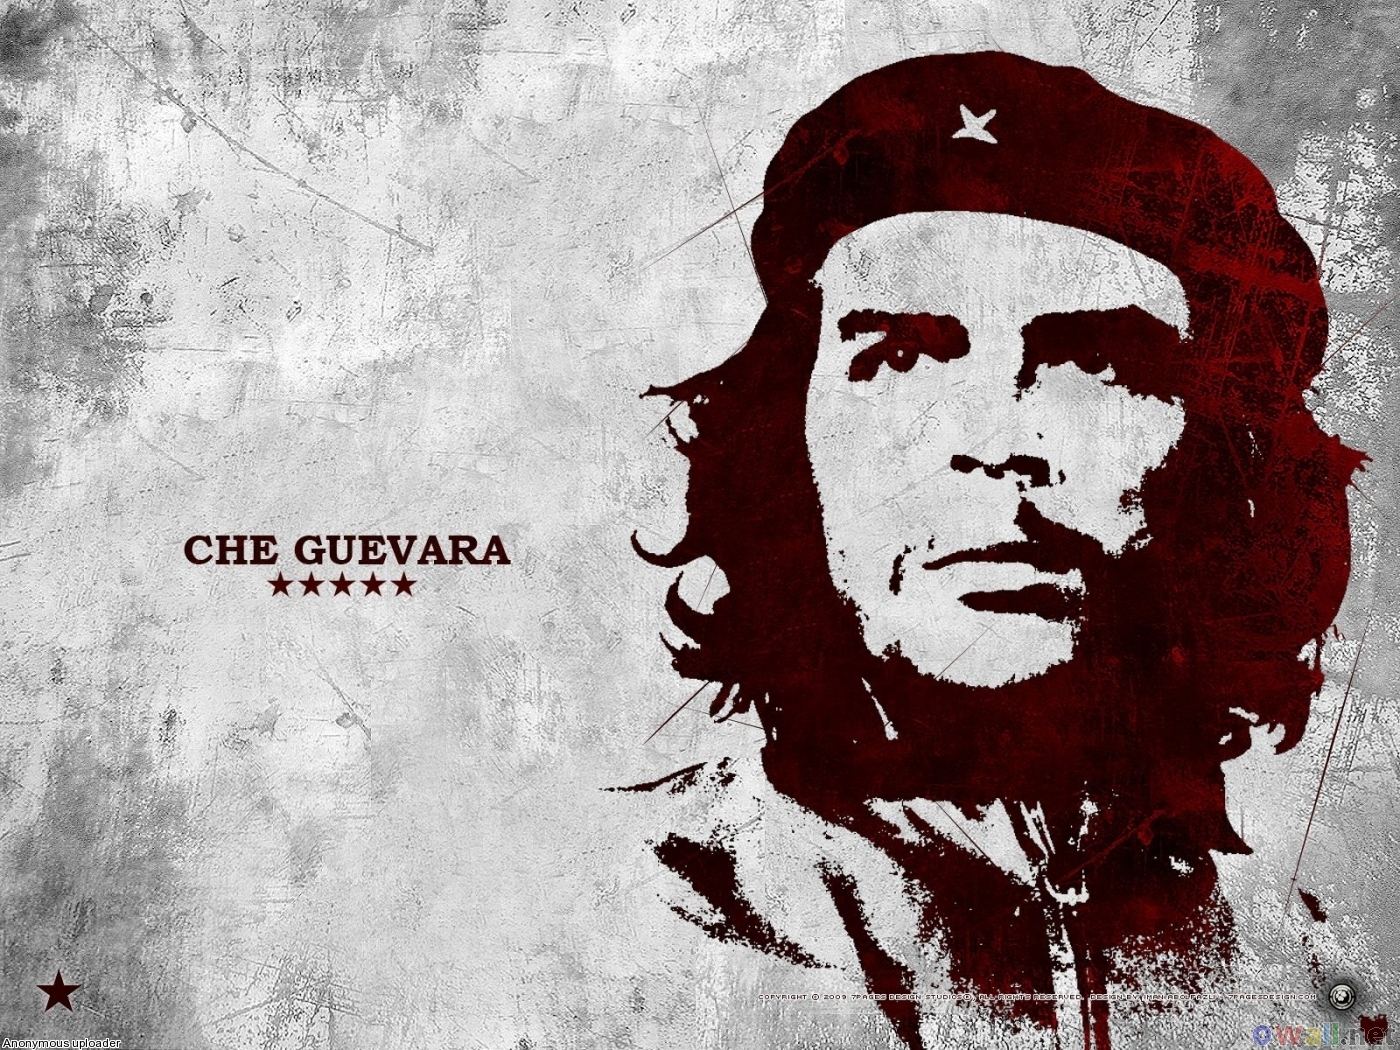 Che Guevara legal travel to cuba